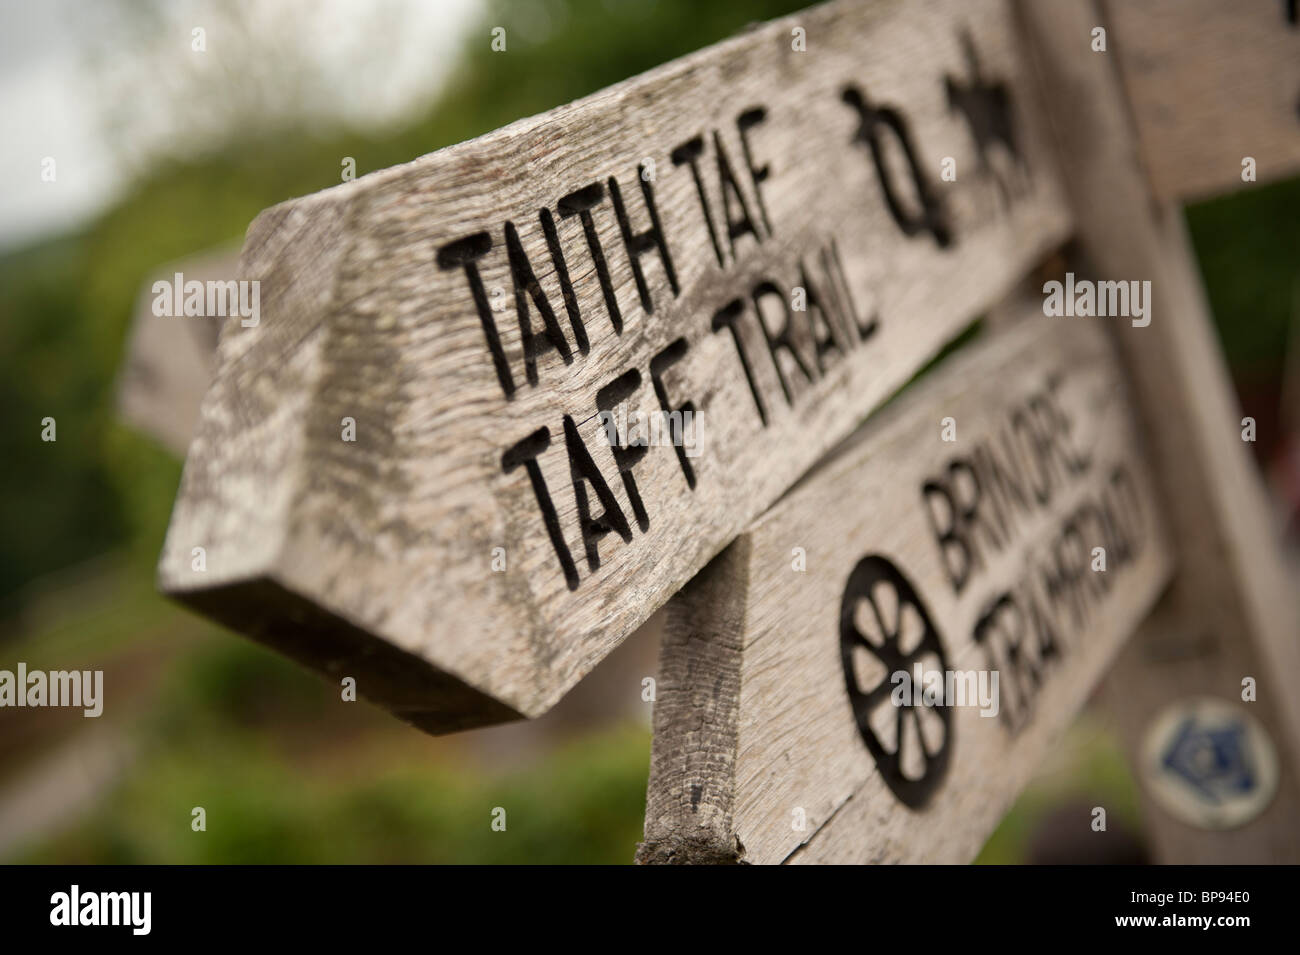 Signpost for the Taff Trail on the Monmouthshire and Brecon Canal at Talybont on Usk, South Wales UK - Stock Image